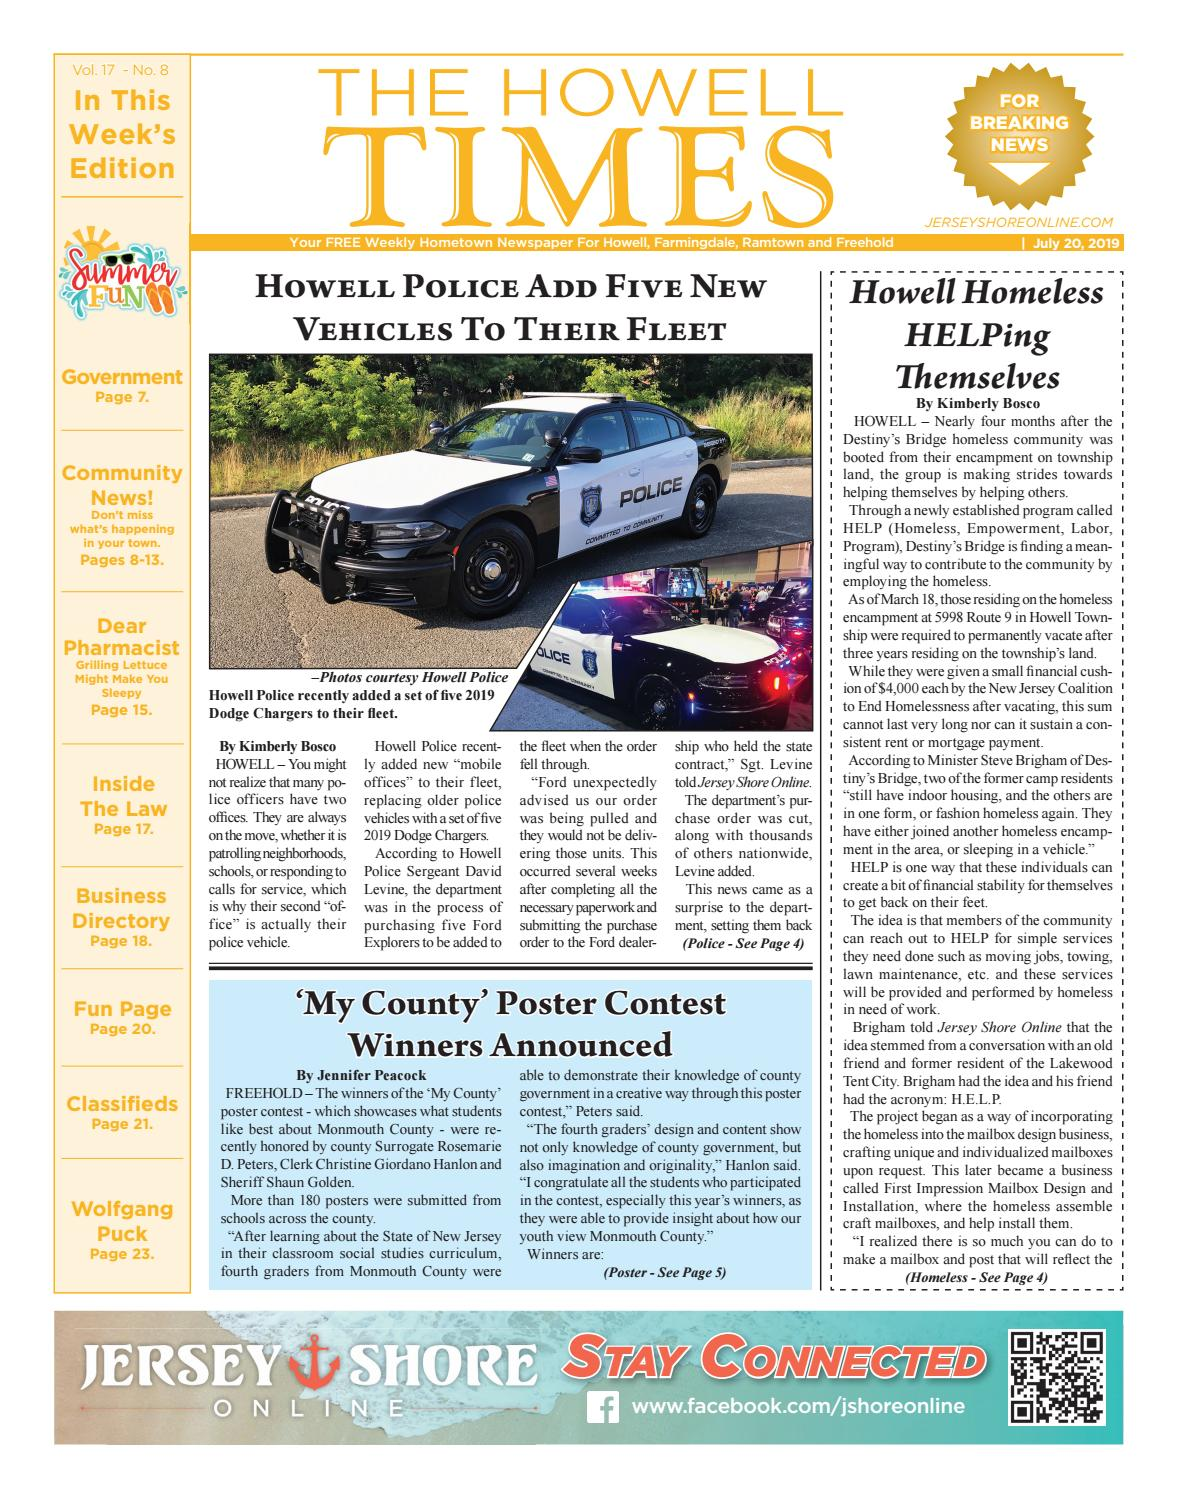 2019-07-20 - The Howell Times by Micromedia Publications